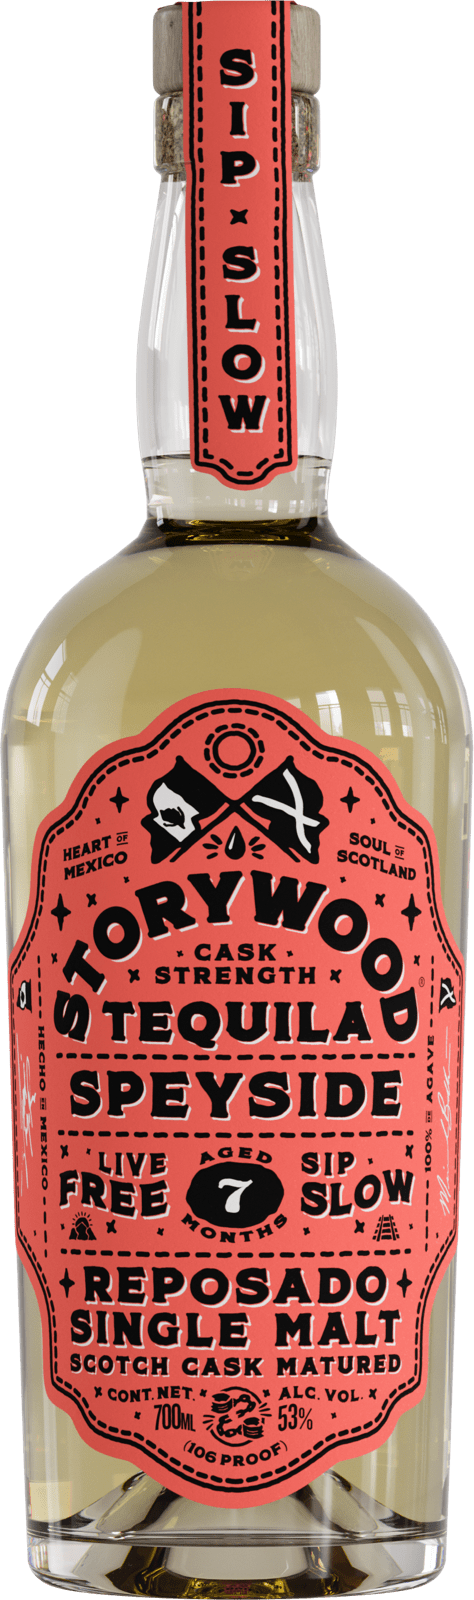 Storywood Speyside 7 Cask Strength tequila